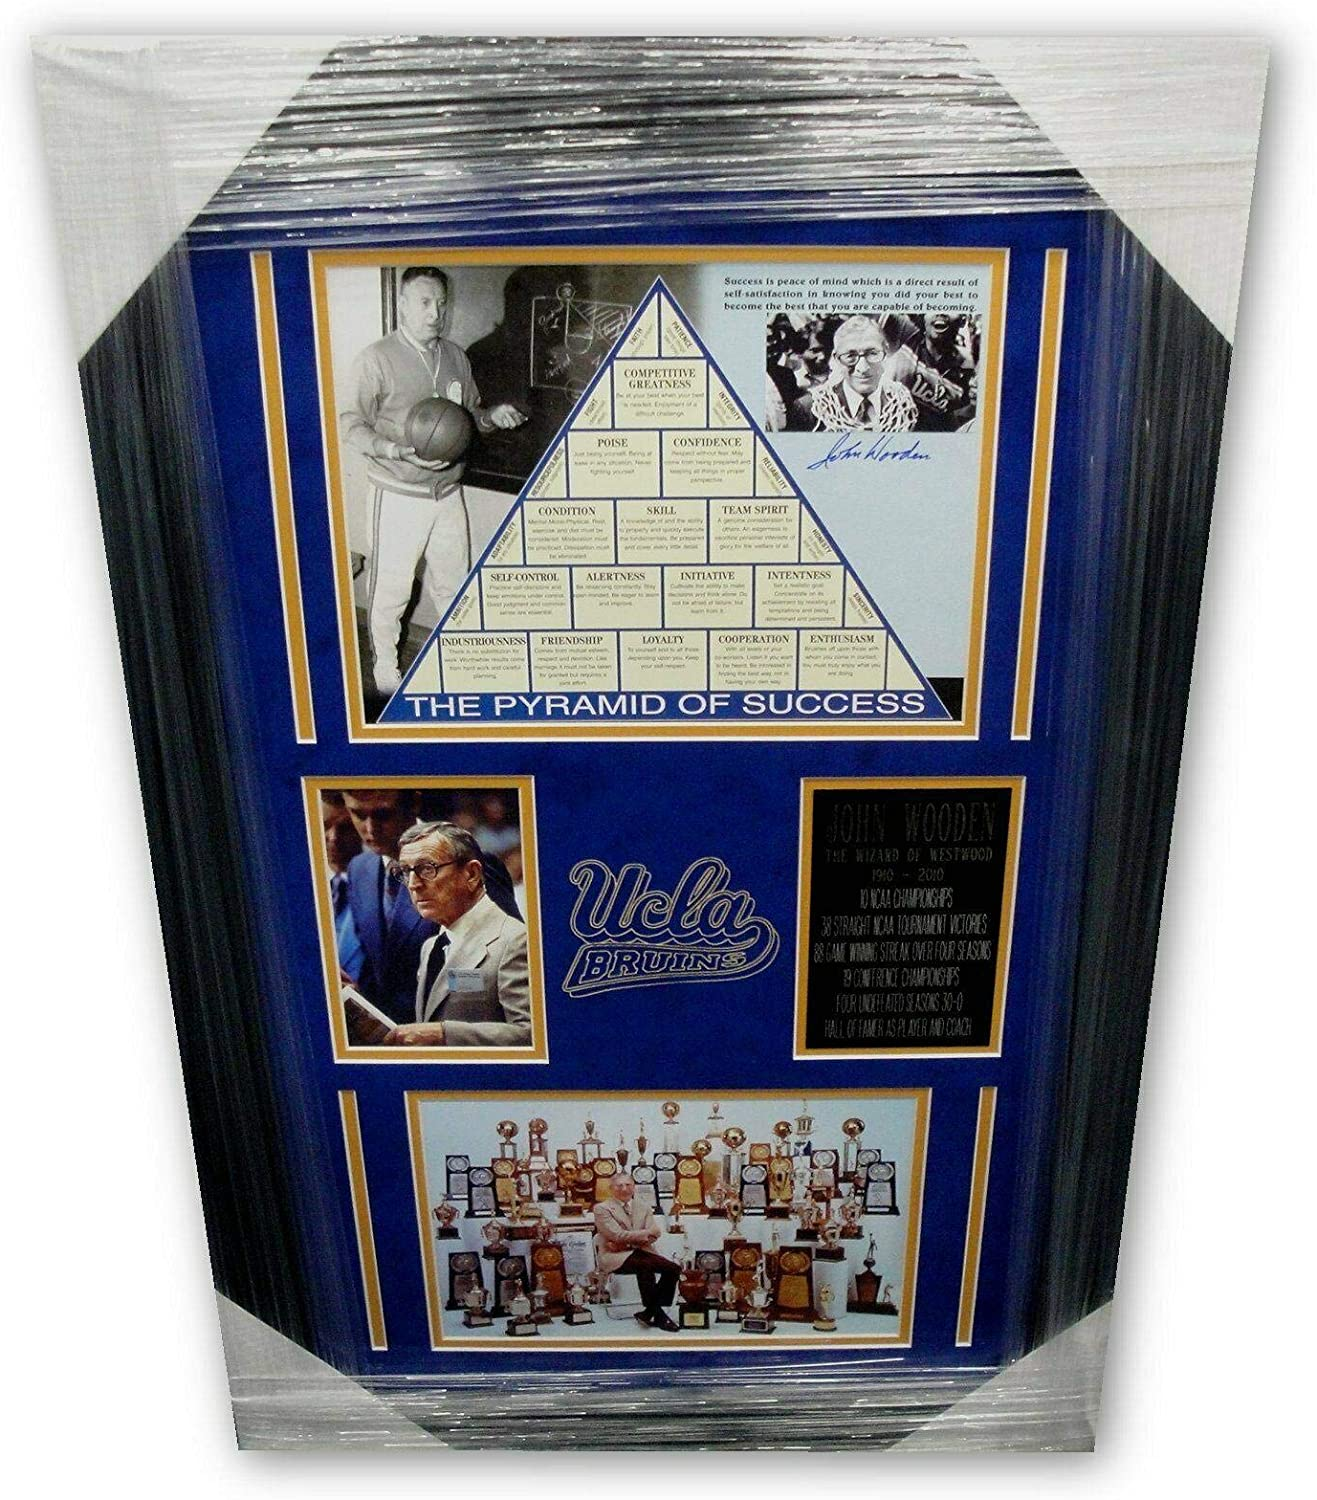 Autographed Wooden Picture  8X10 Pyramid Success Framed c3  Autographed College Photos